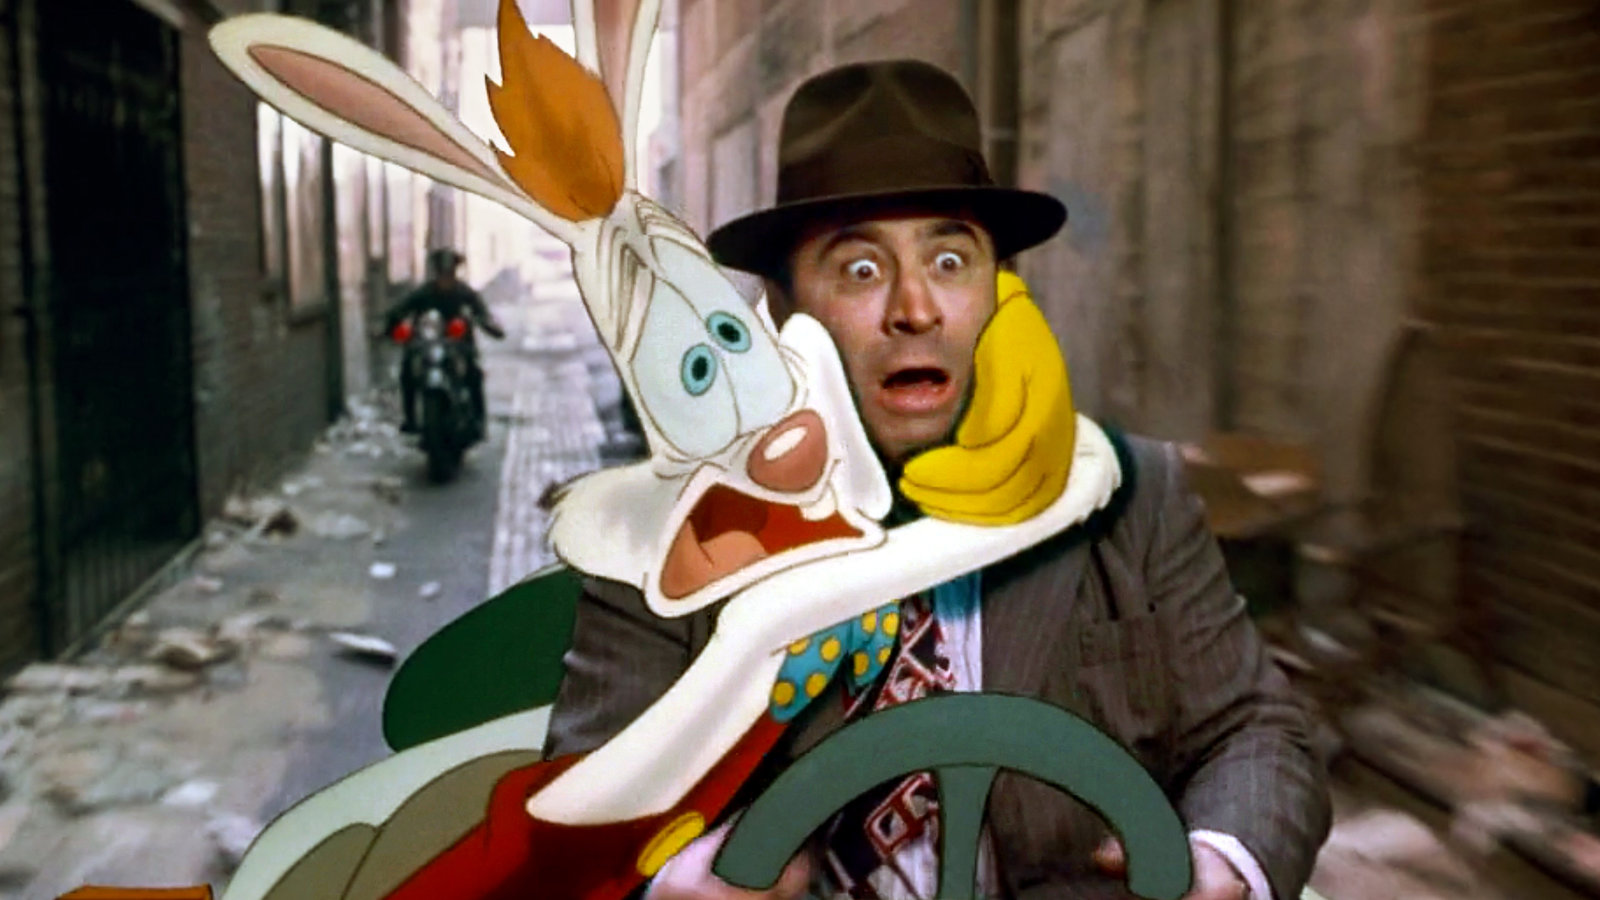 roger-rabbit-watching-recommendation-videoSixteenByNineJumbo1600-v10.jpg